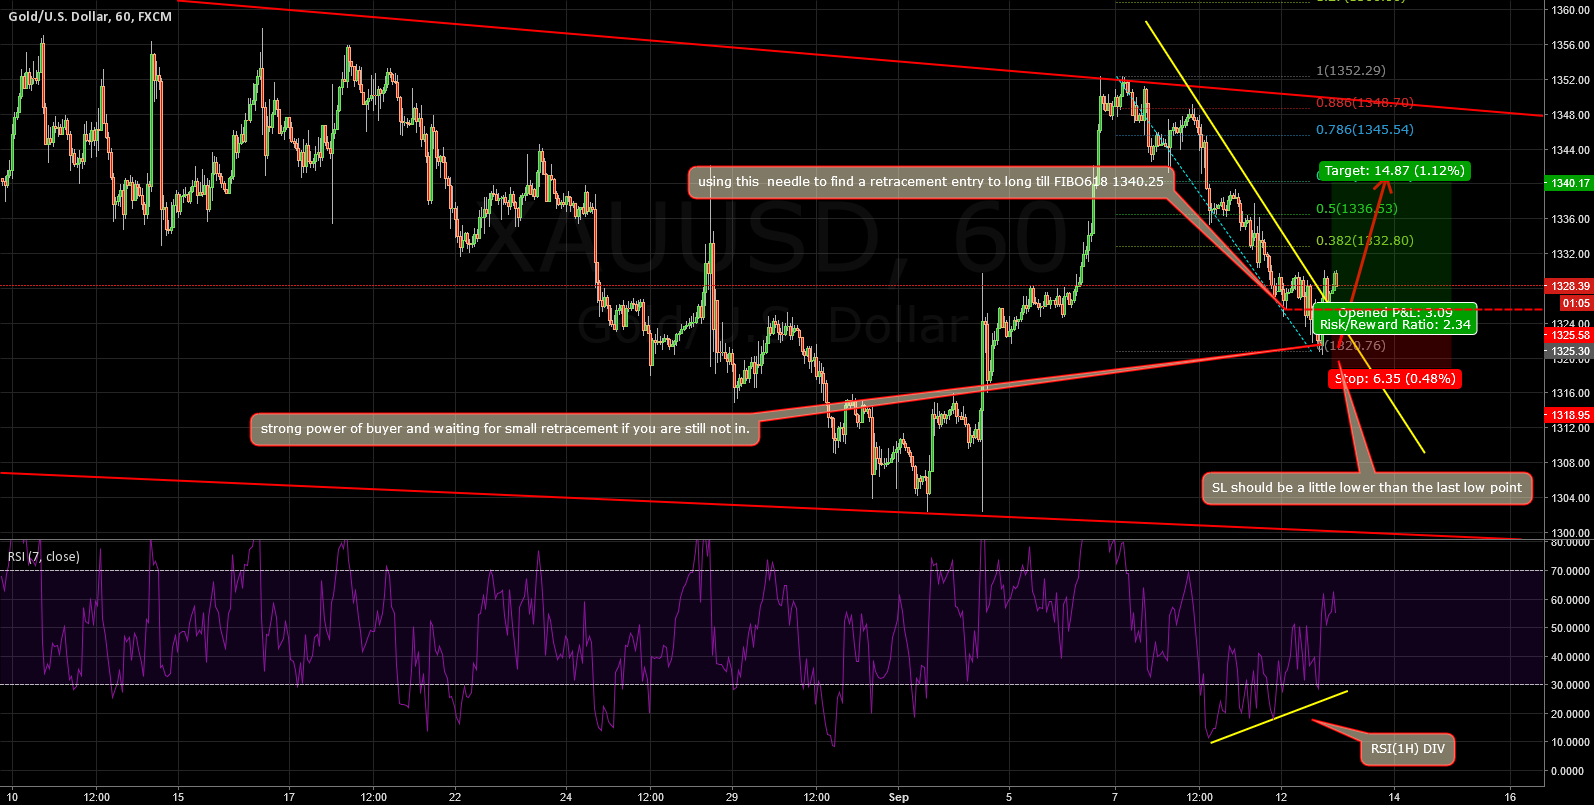 XAUUSD: DETAILS ABOUT HOW TO TRADE THE LONG TRADE NOW